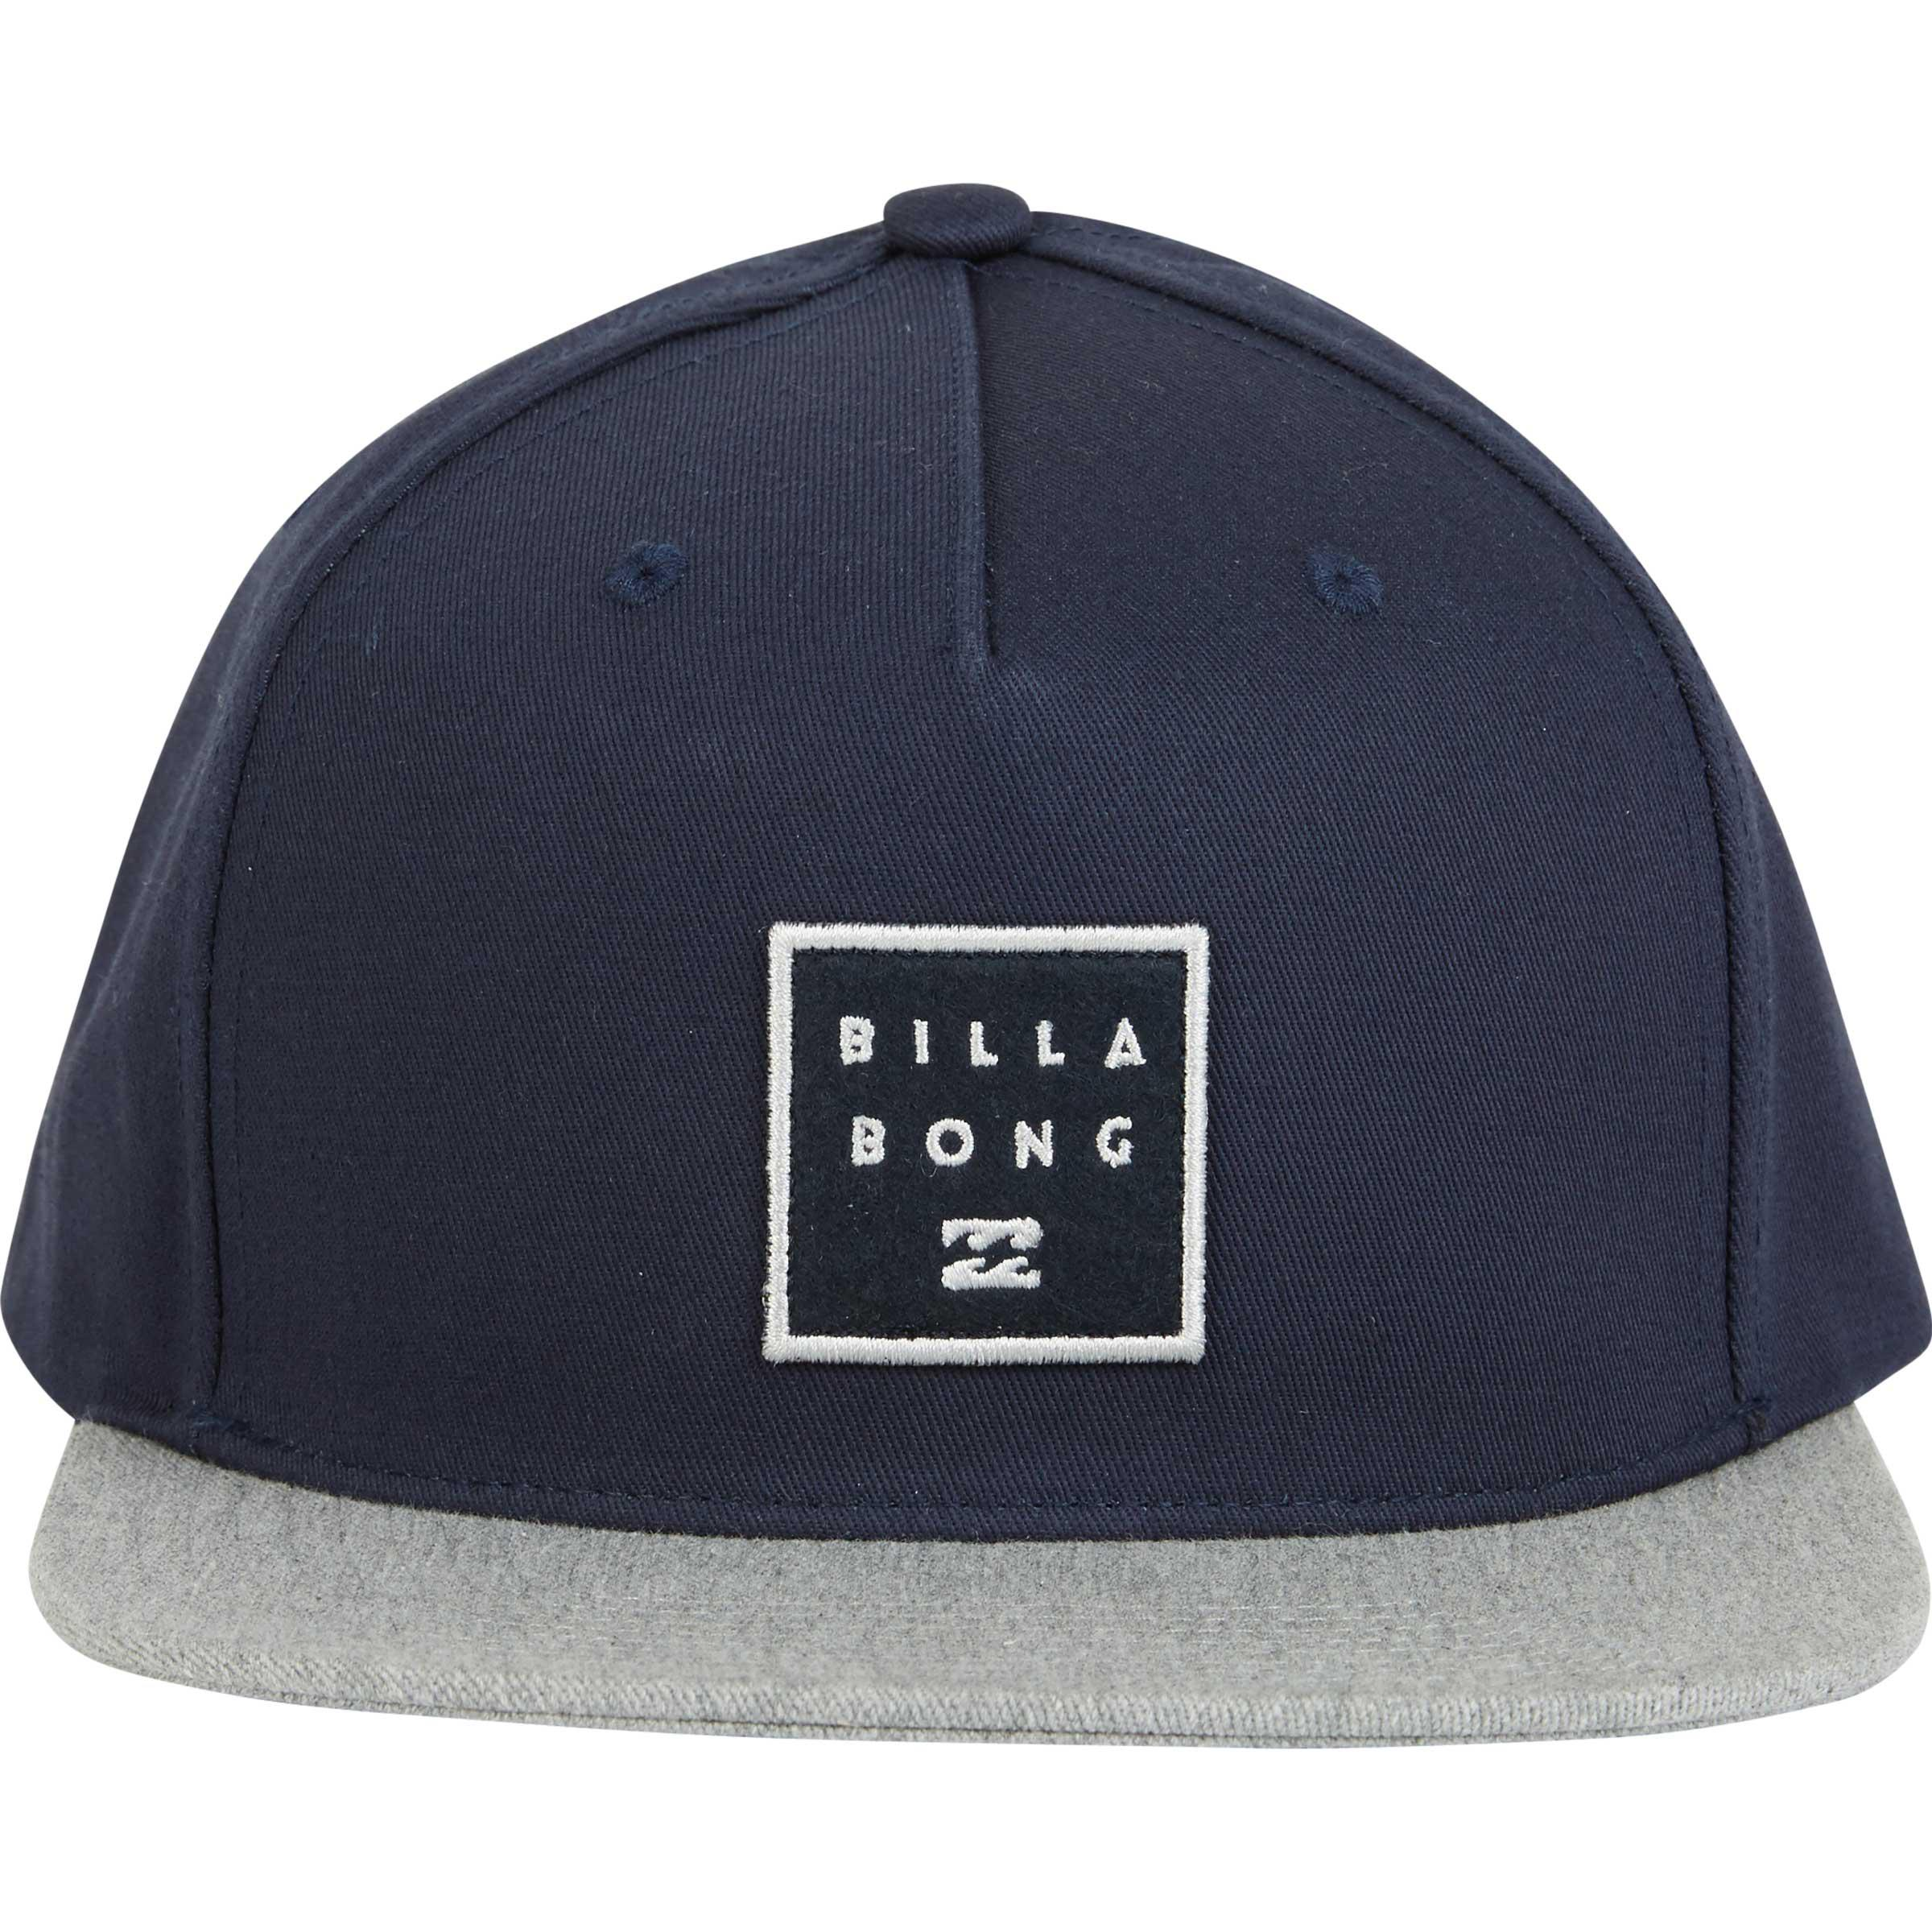 0b003307f63 Lyst billabong stacked snapback hat in blue for men jpg 2400x2400 Stacked  hats snap backs